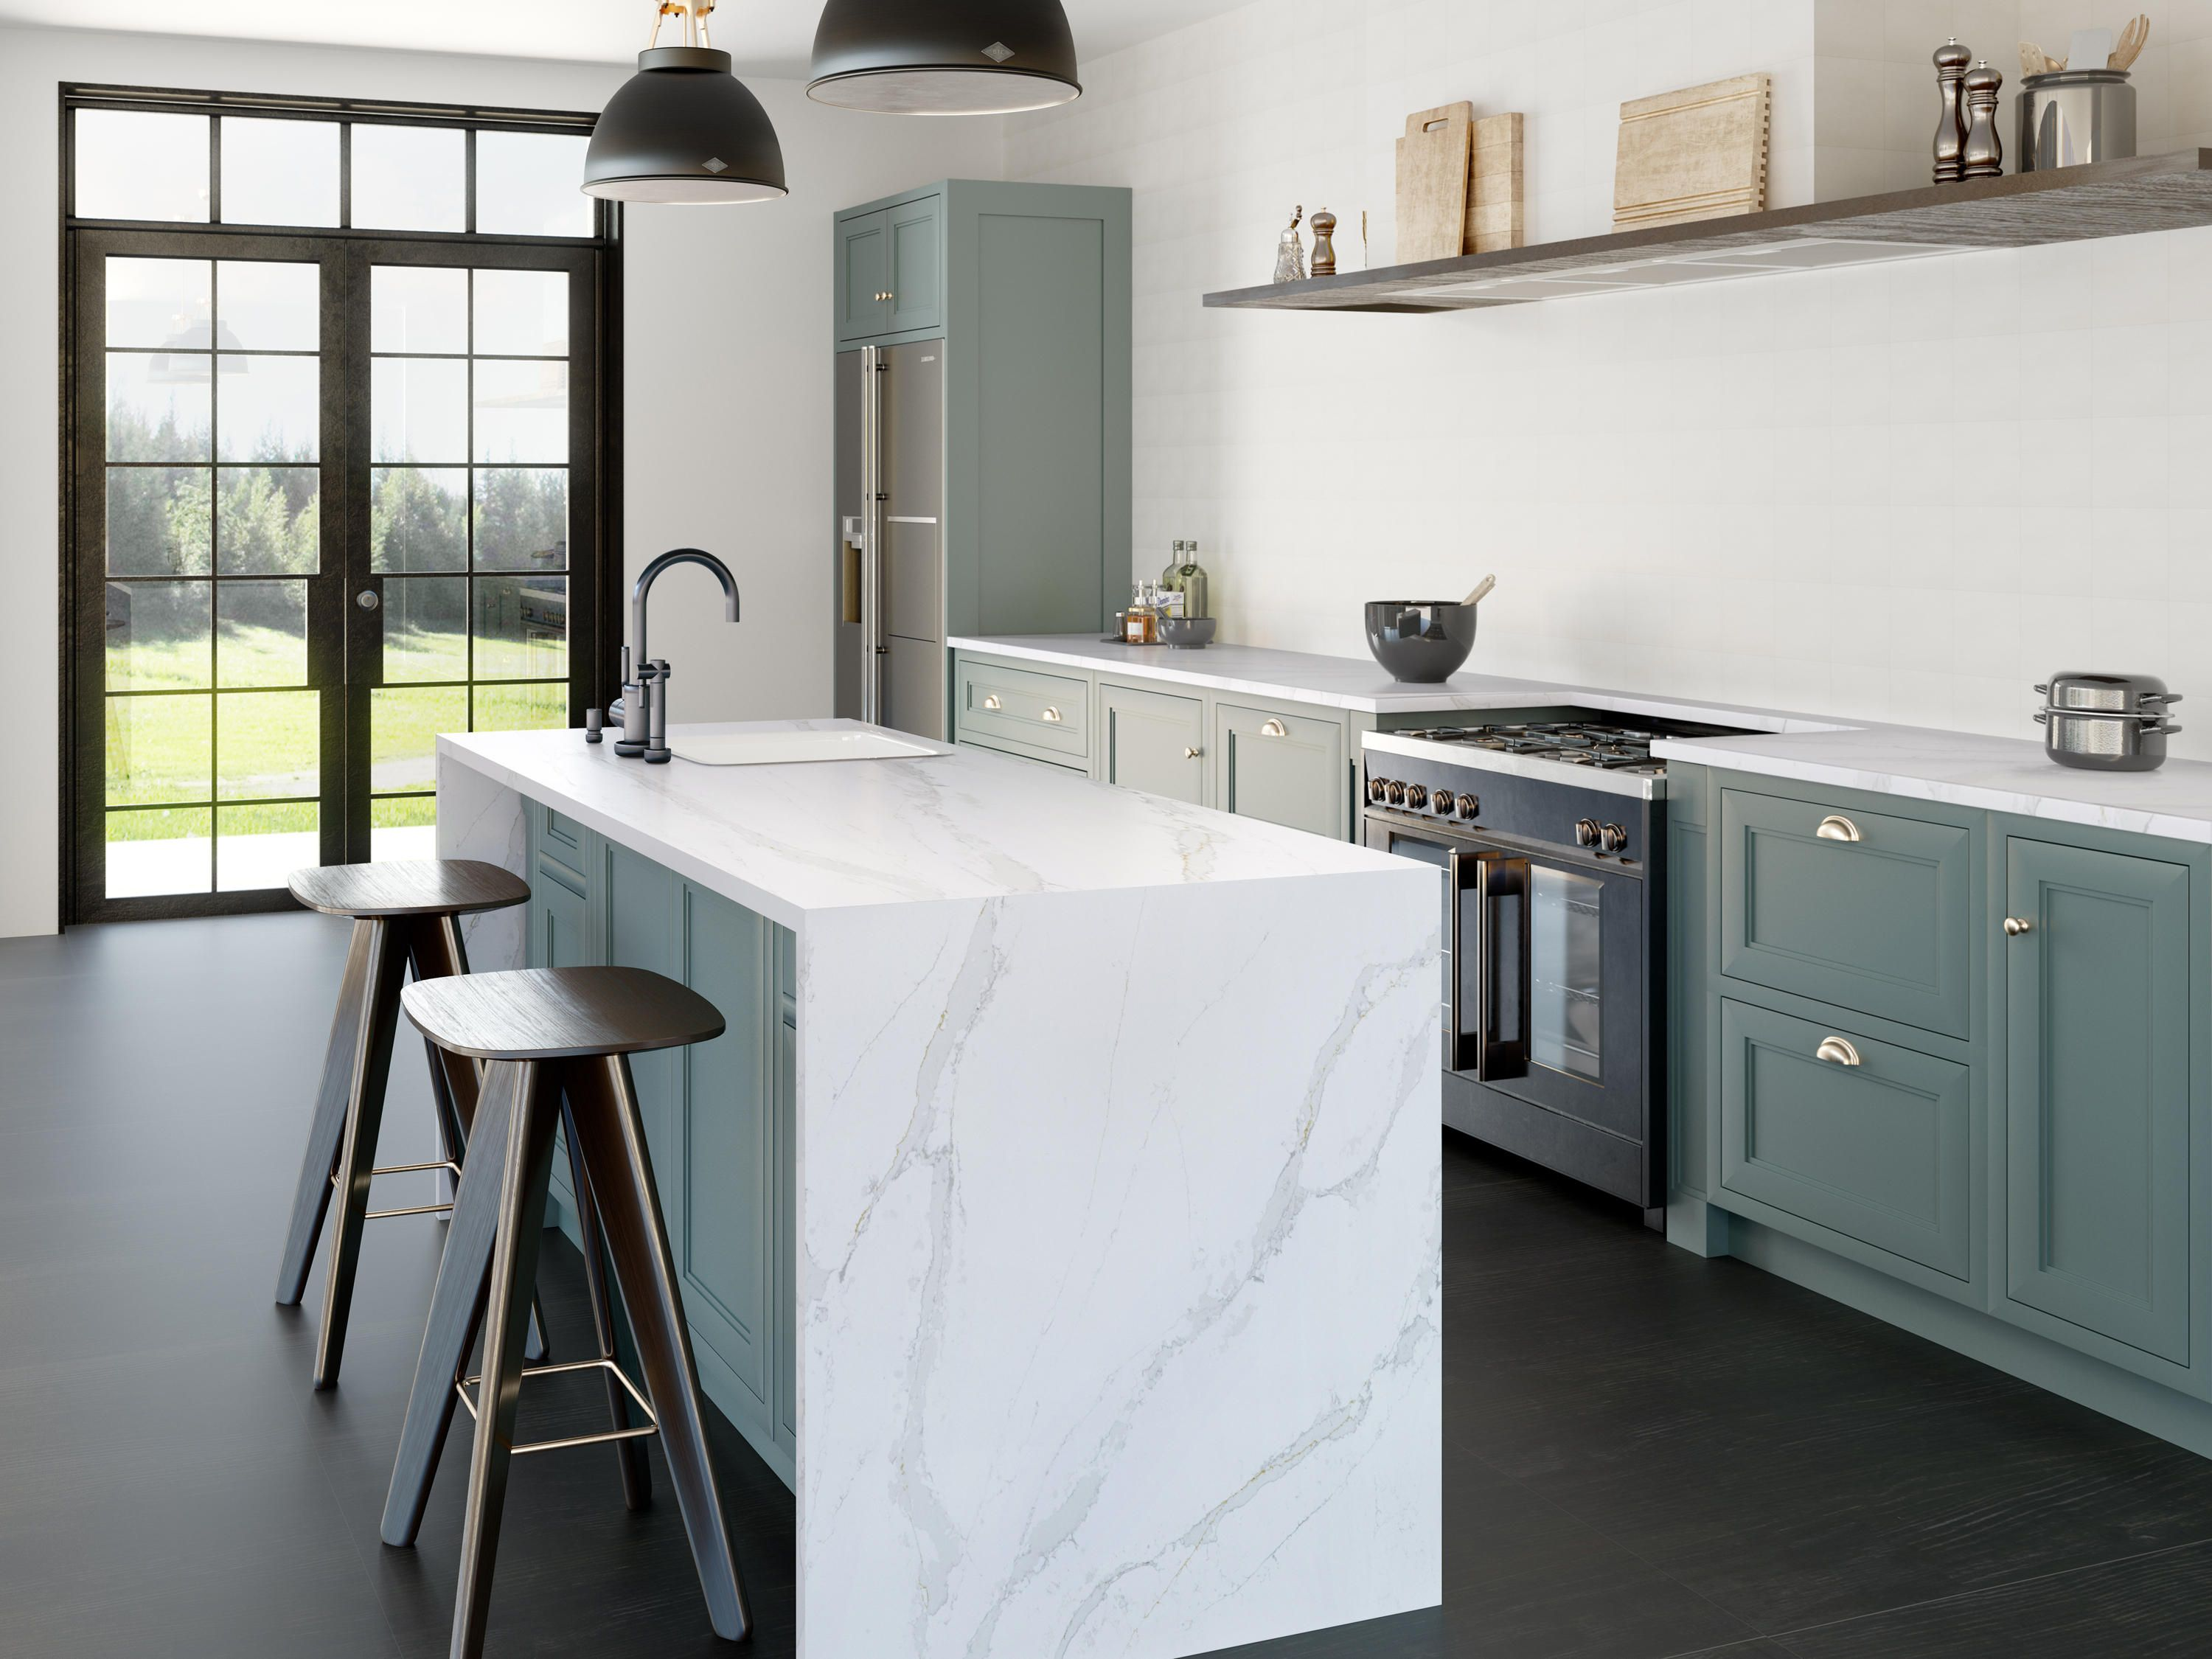 Wunderbar Image Result For Calacatta Gold Silestone